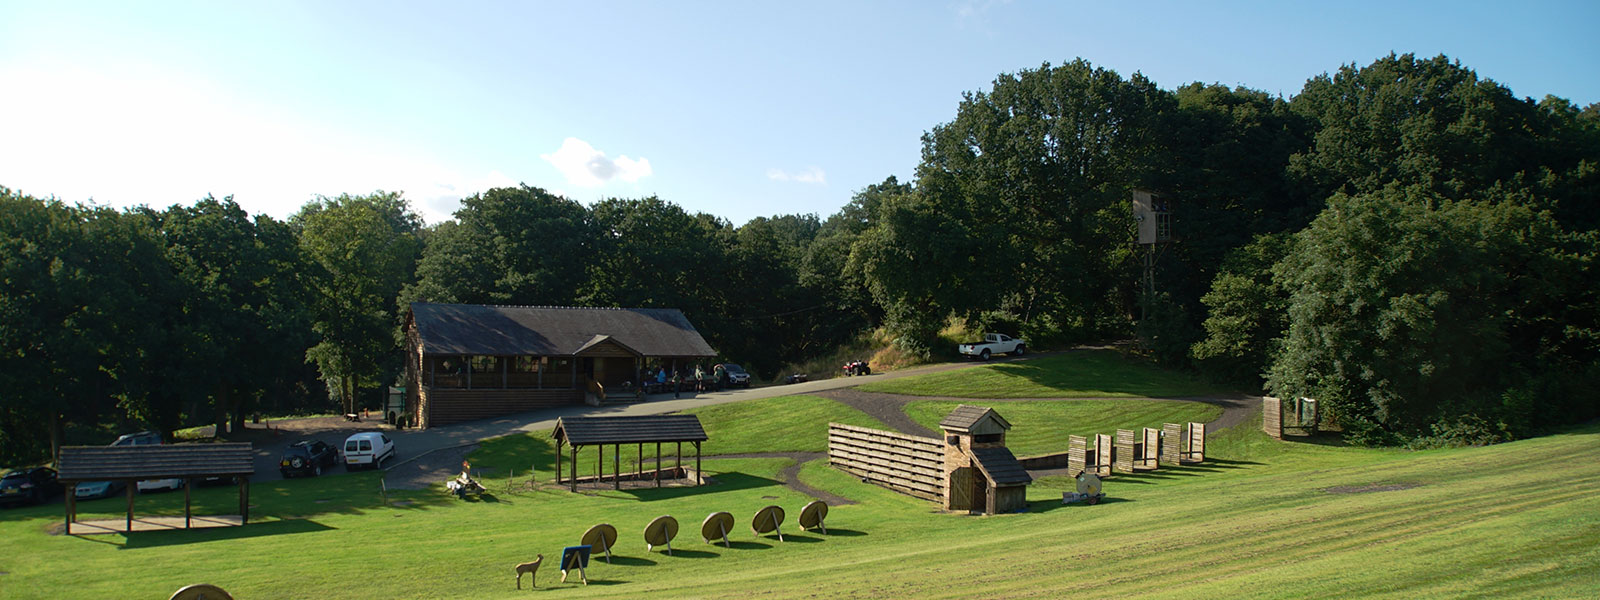 Adventure Cheshire Venue